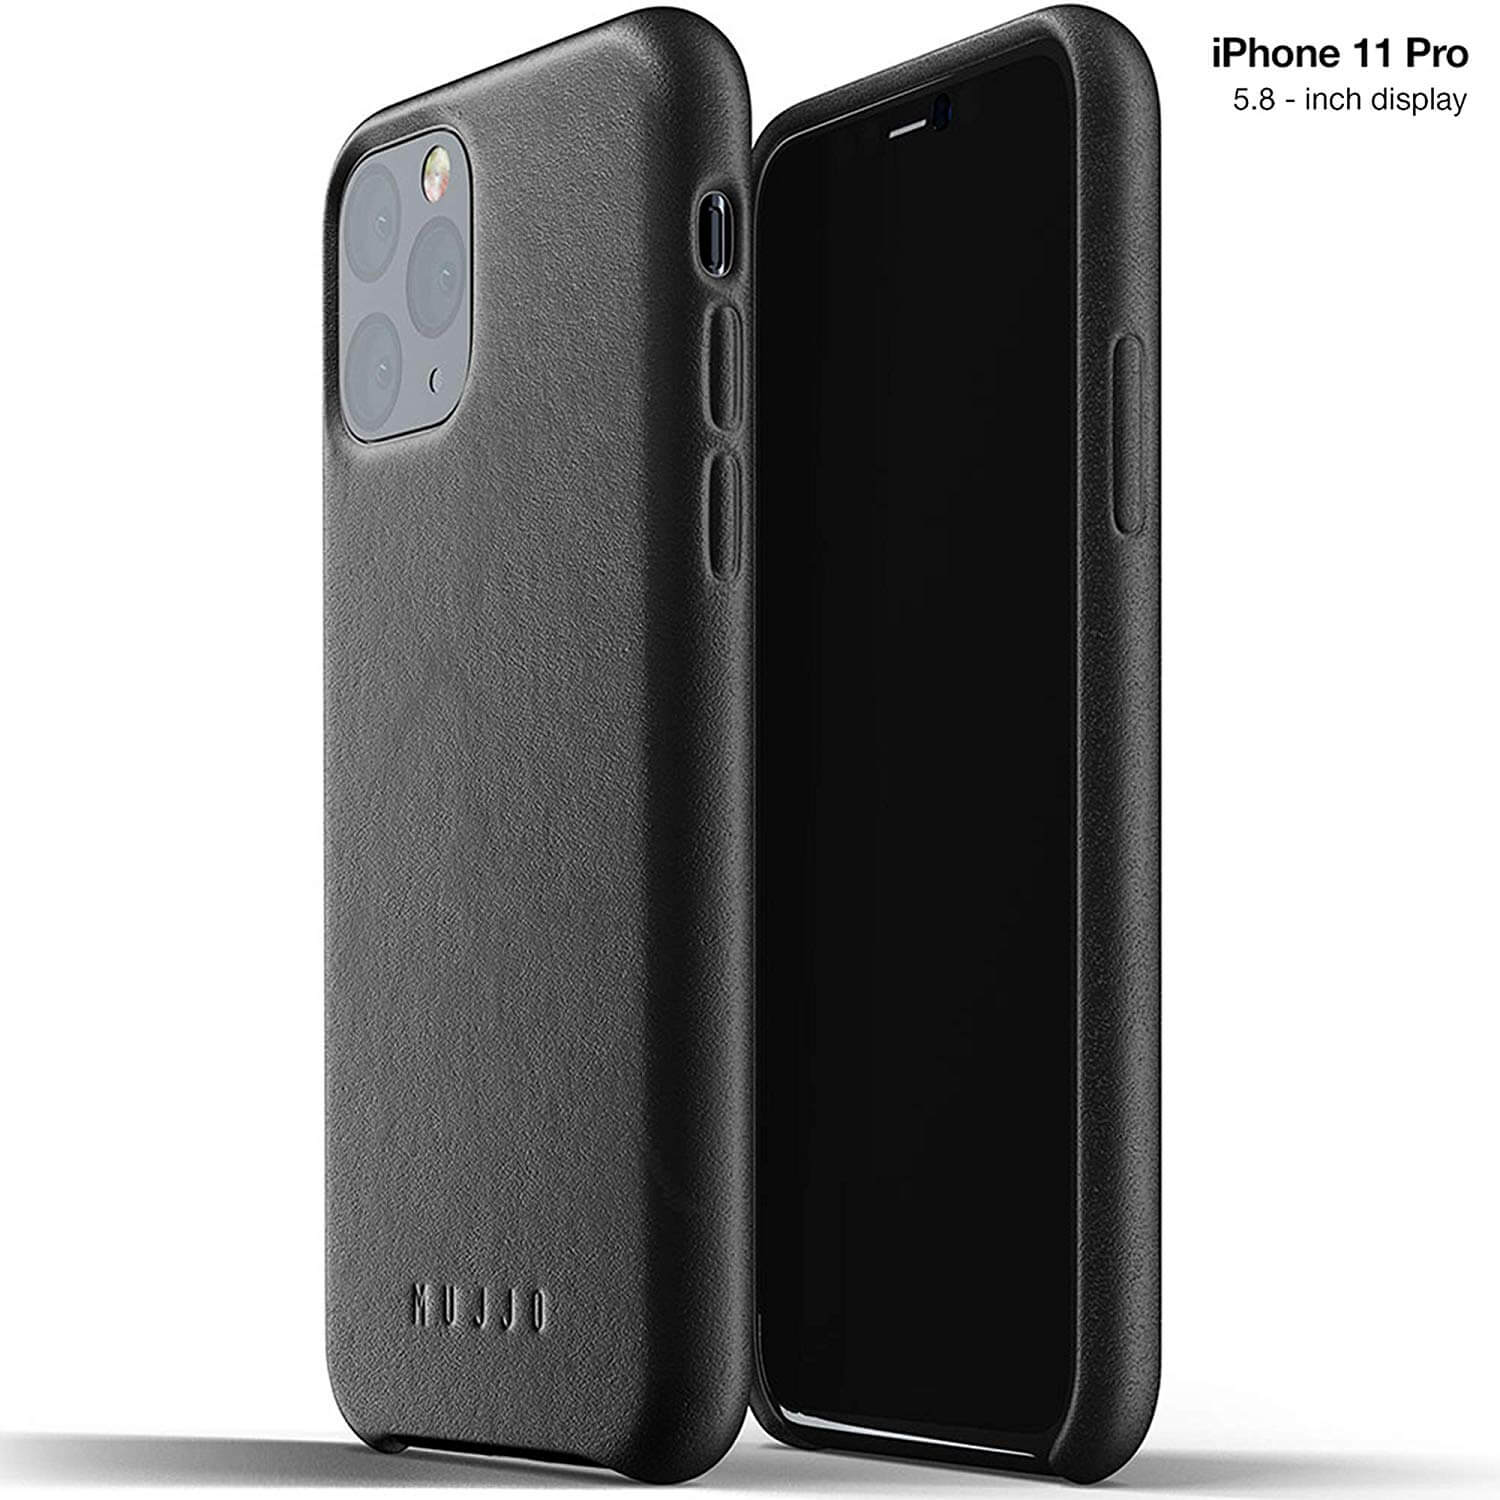 Mujjo Full Leather Case for iPhone 11 Pro (black)